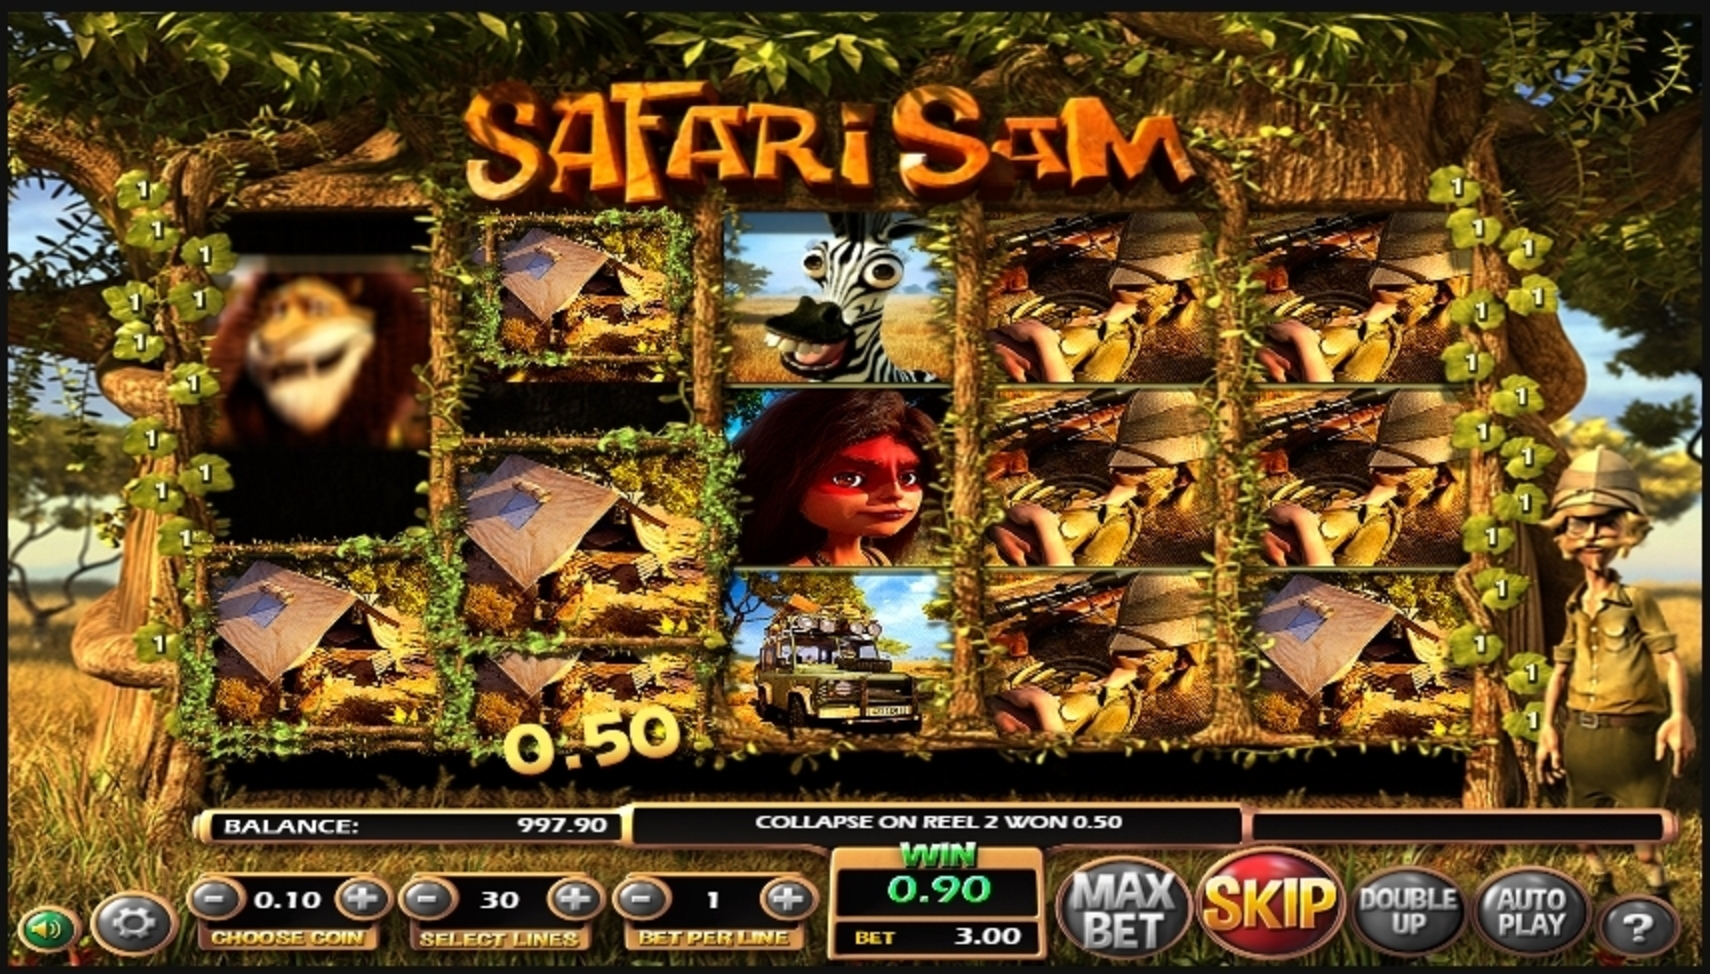 Win Money in Safari Sam Free Slot Game by Betsoft